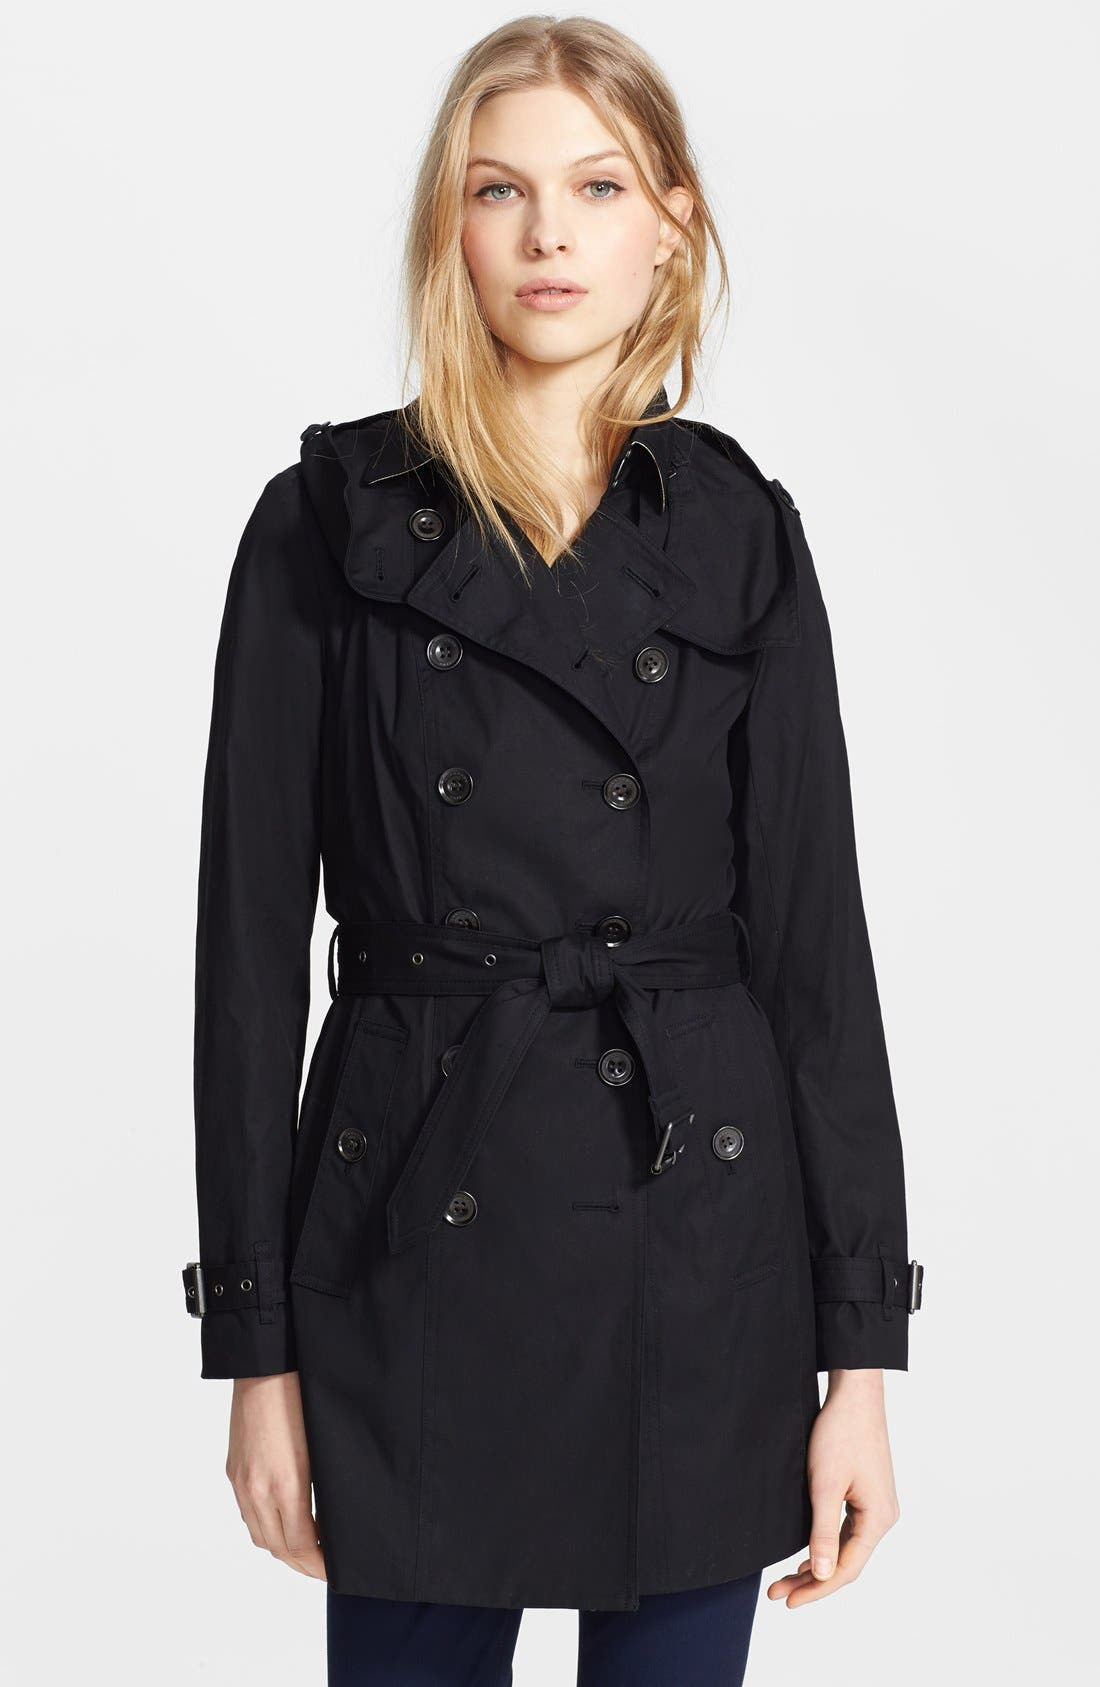 'Reymoore' Trench Coat with Detachable Hood,                         Main,                         color, 001